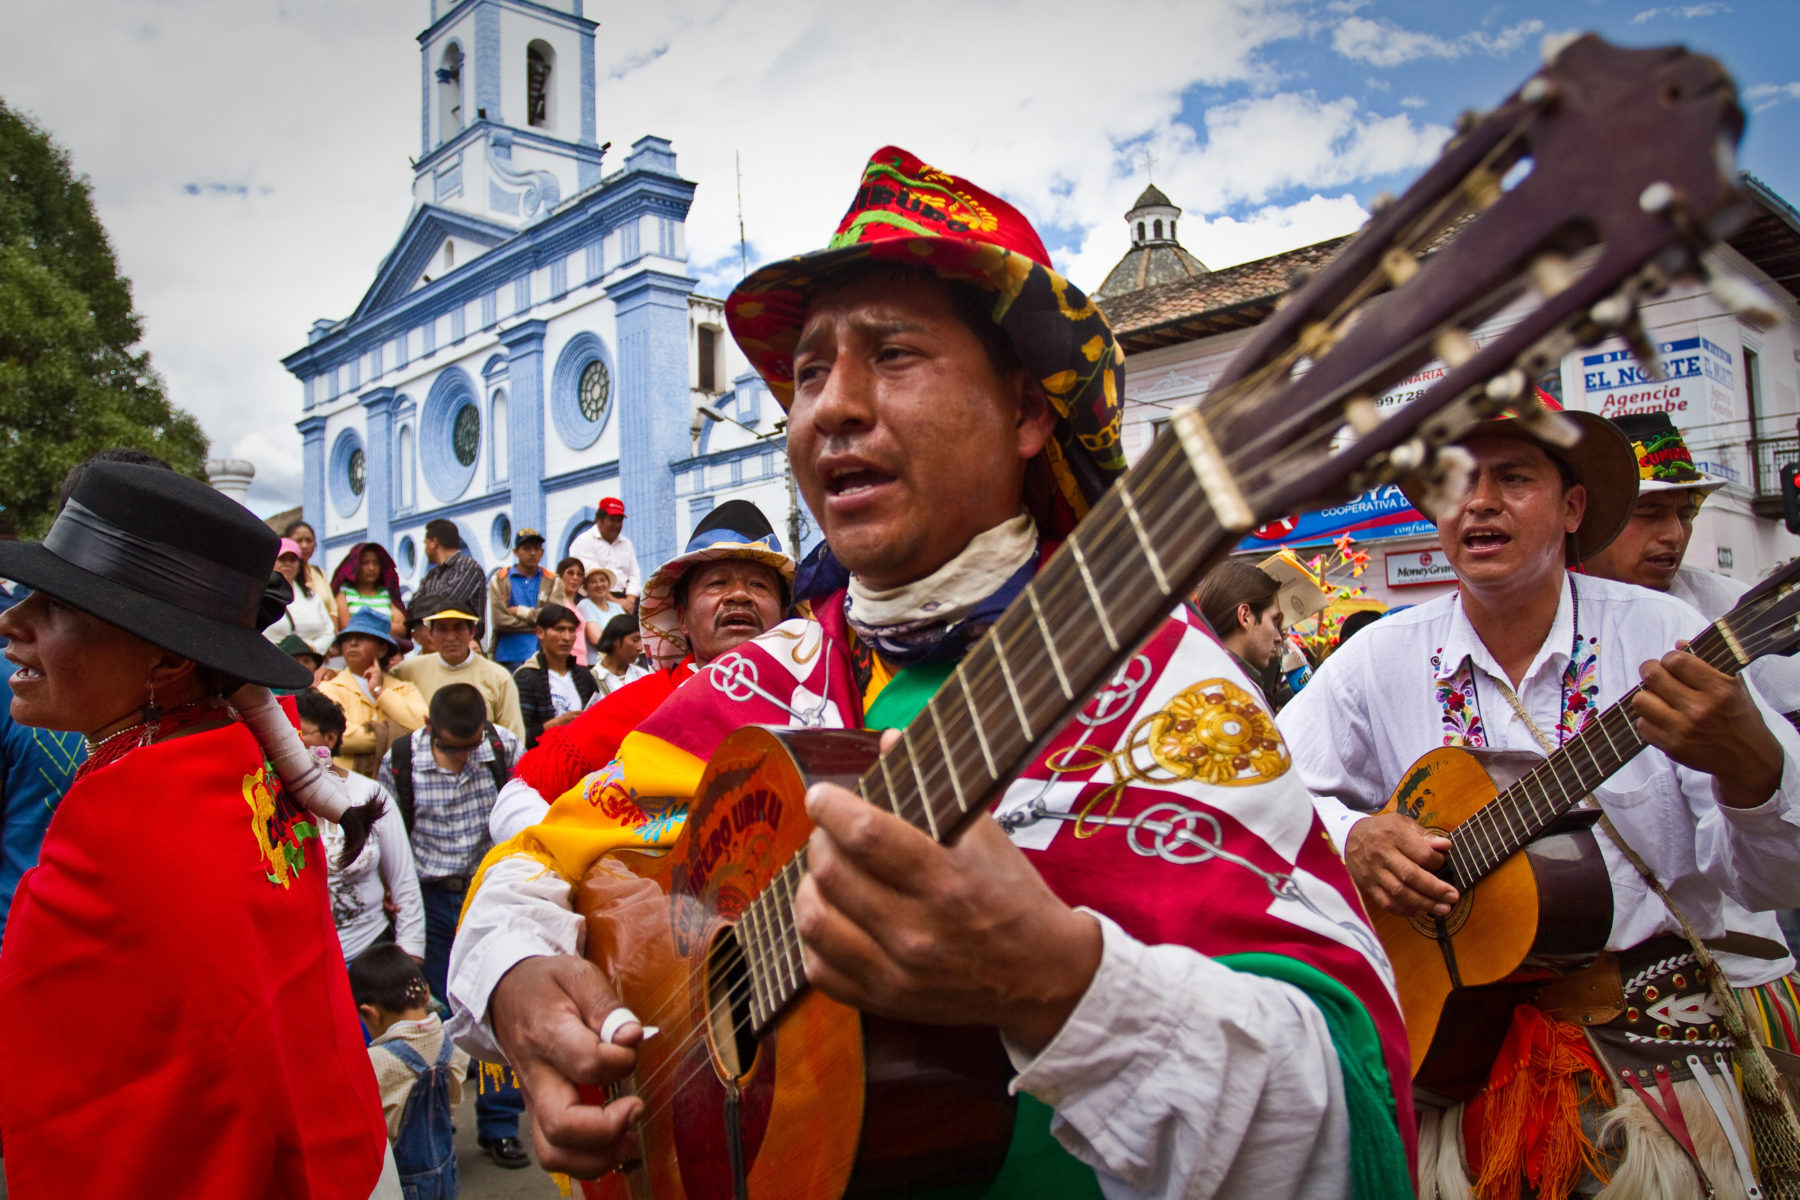 Celebrating Inti Raymi in Peru